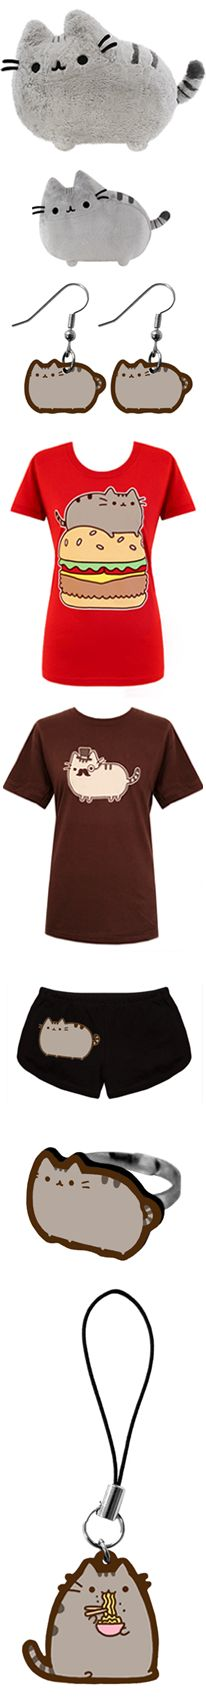 Pusheen the cat I like the tee shirts, shorts, and plushies!